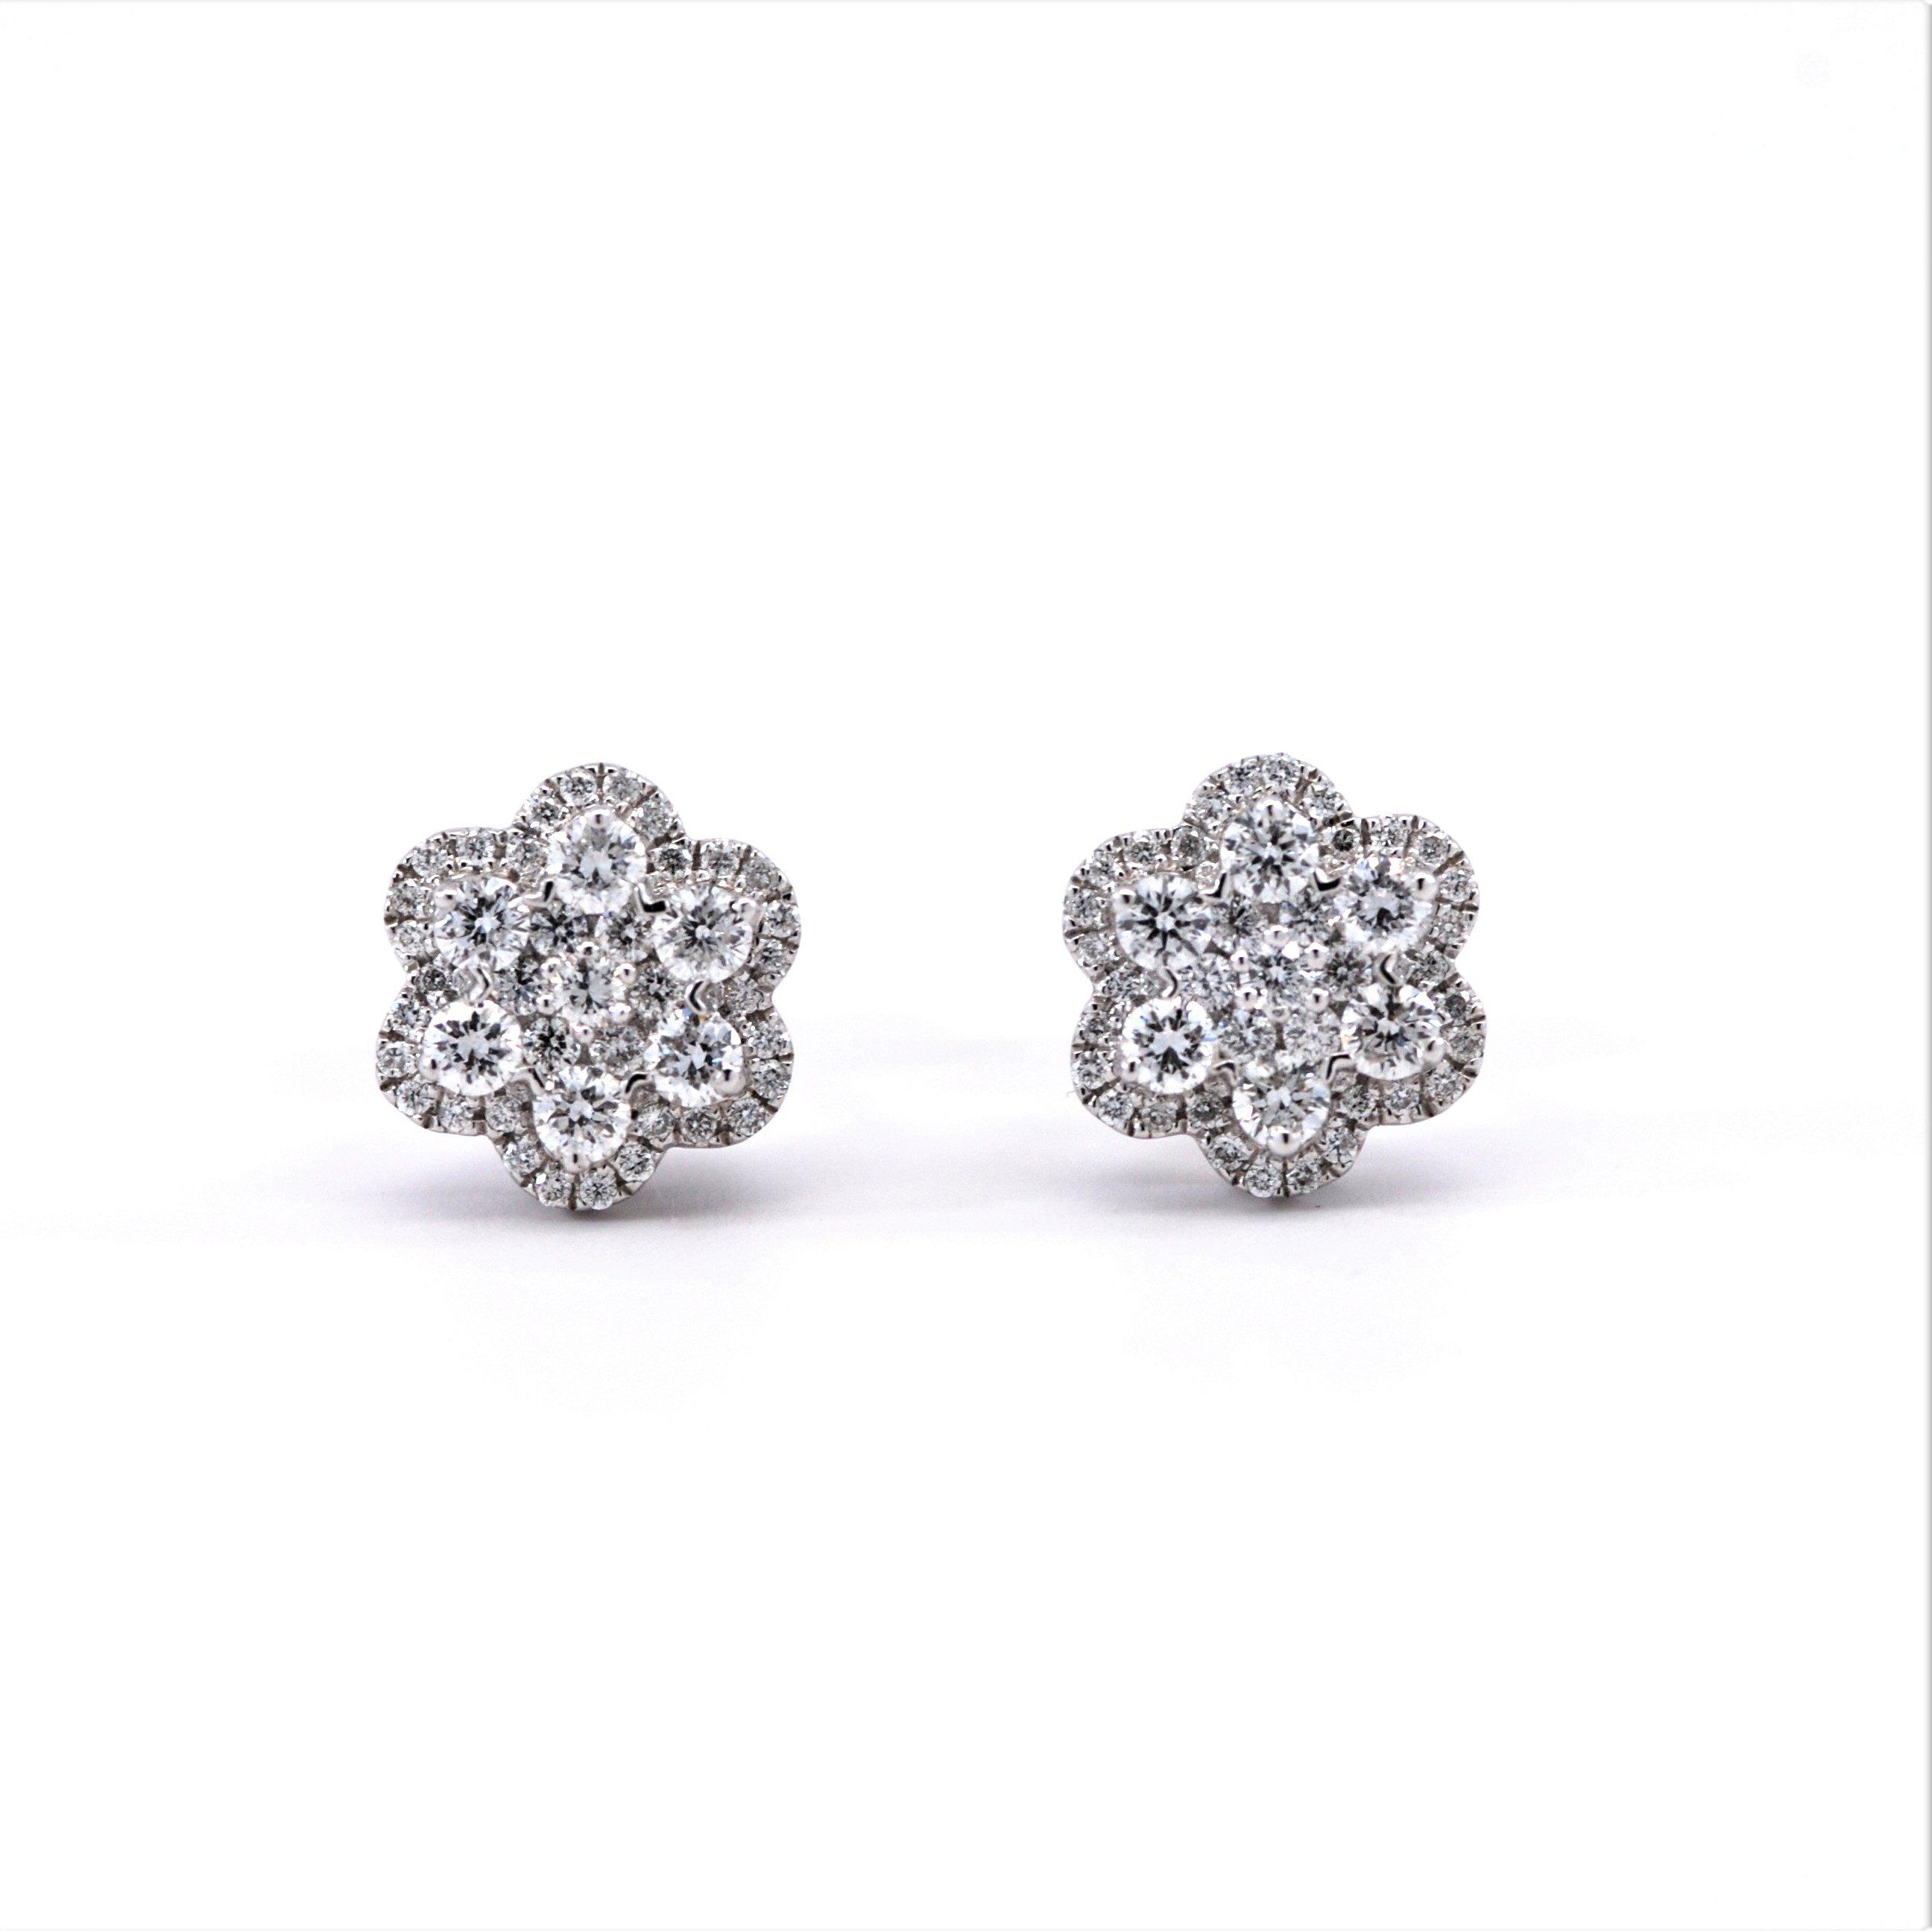 slv djd blumlux antique catalog studs diamond stud